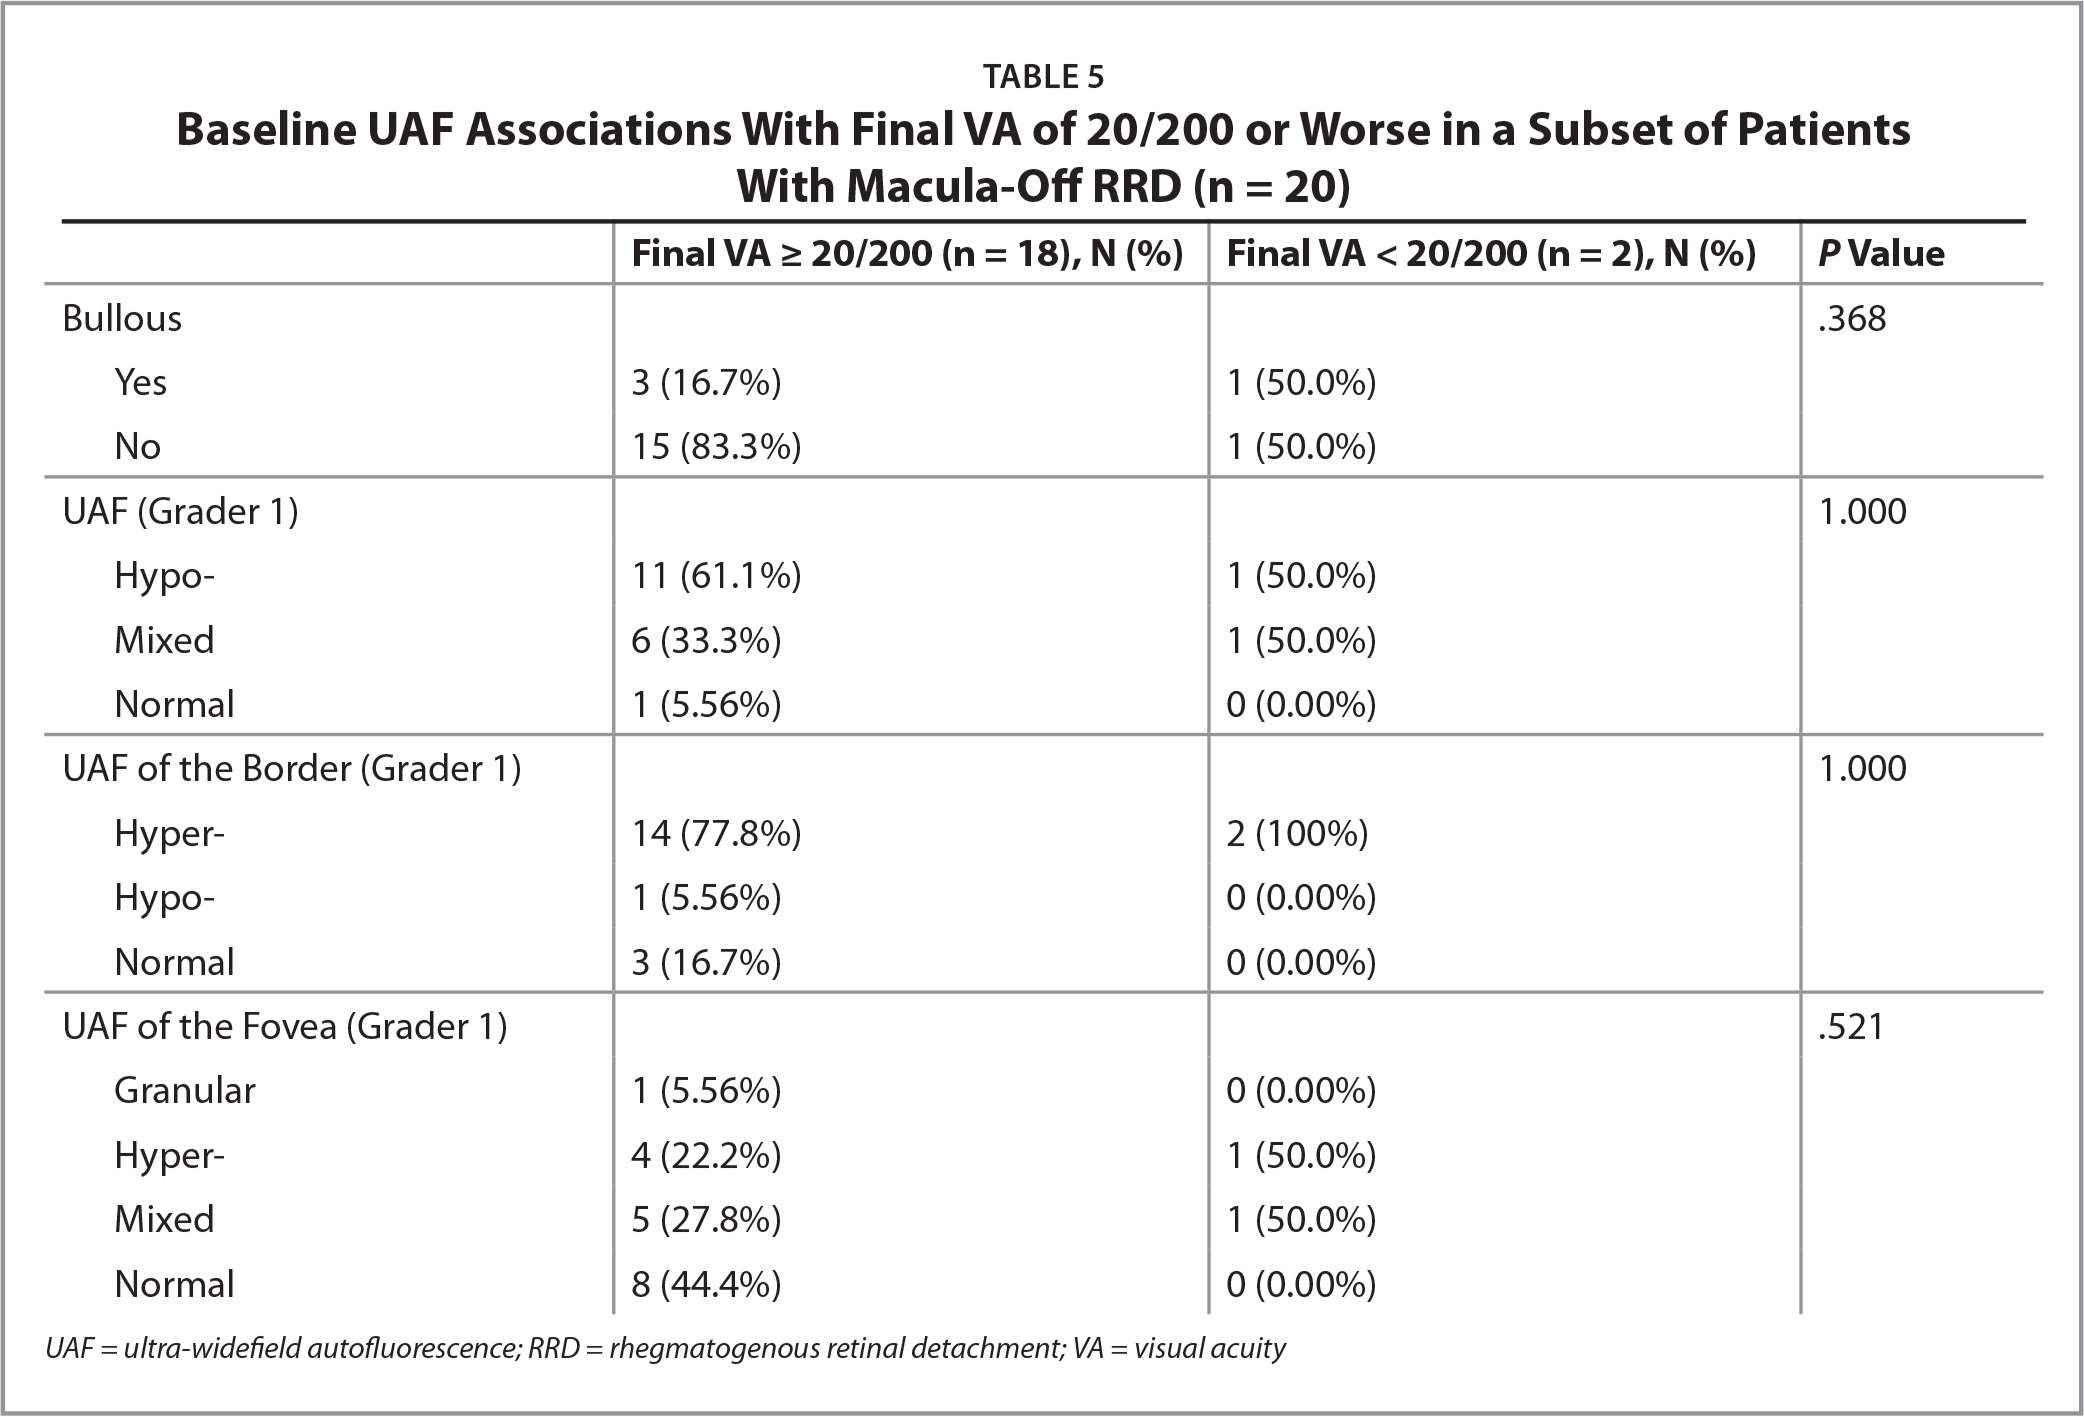 Baseline UAF Associations With Final VA of 20/200 or Worse in a Subset of Patients With Macula-Off RRD (n = 20)